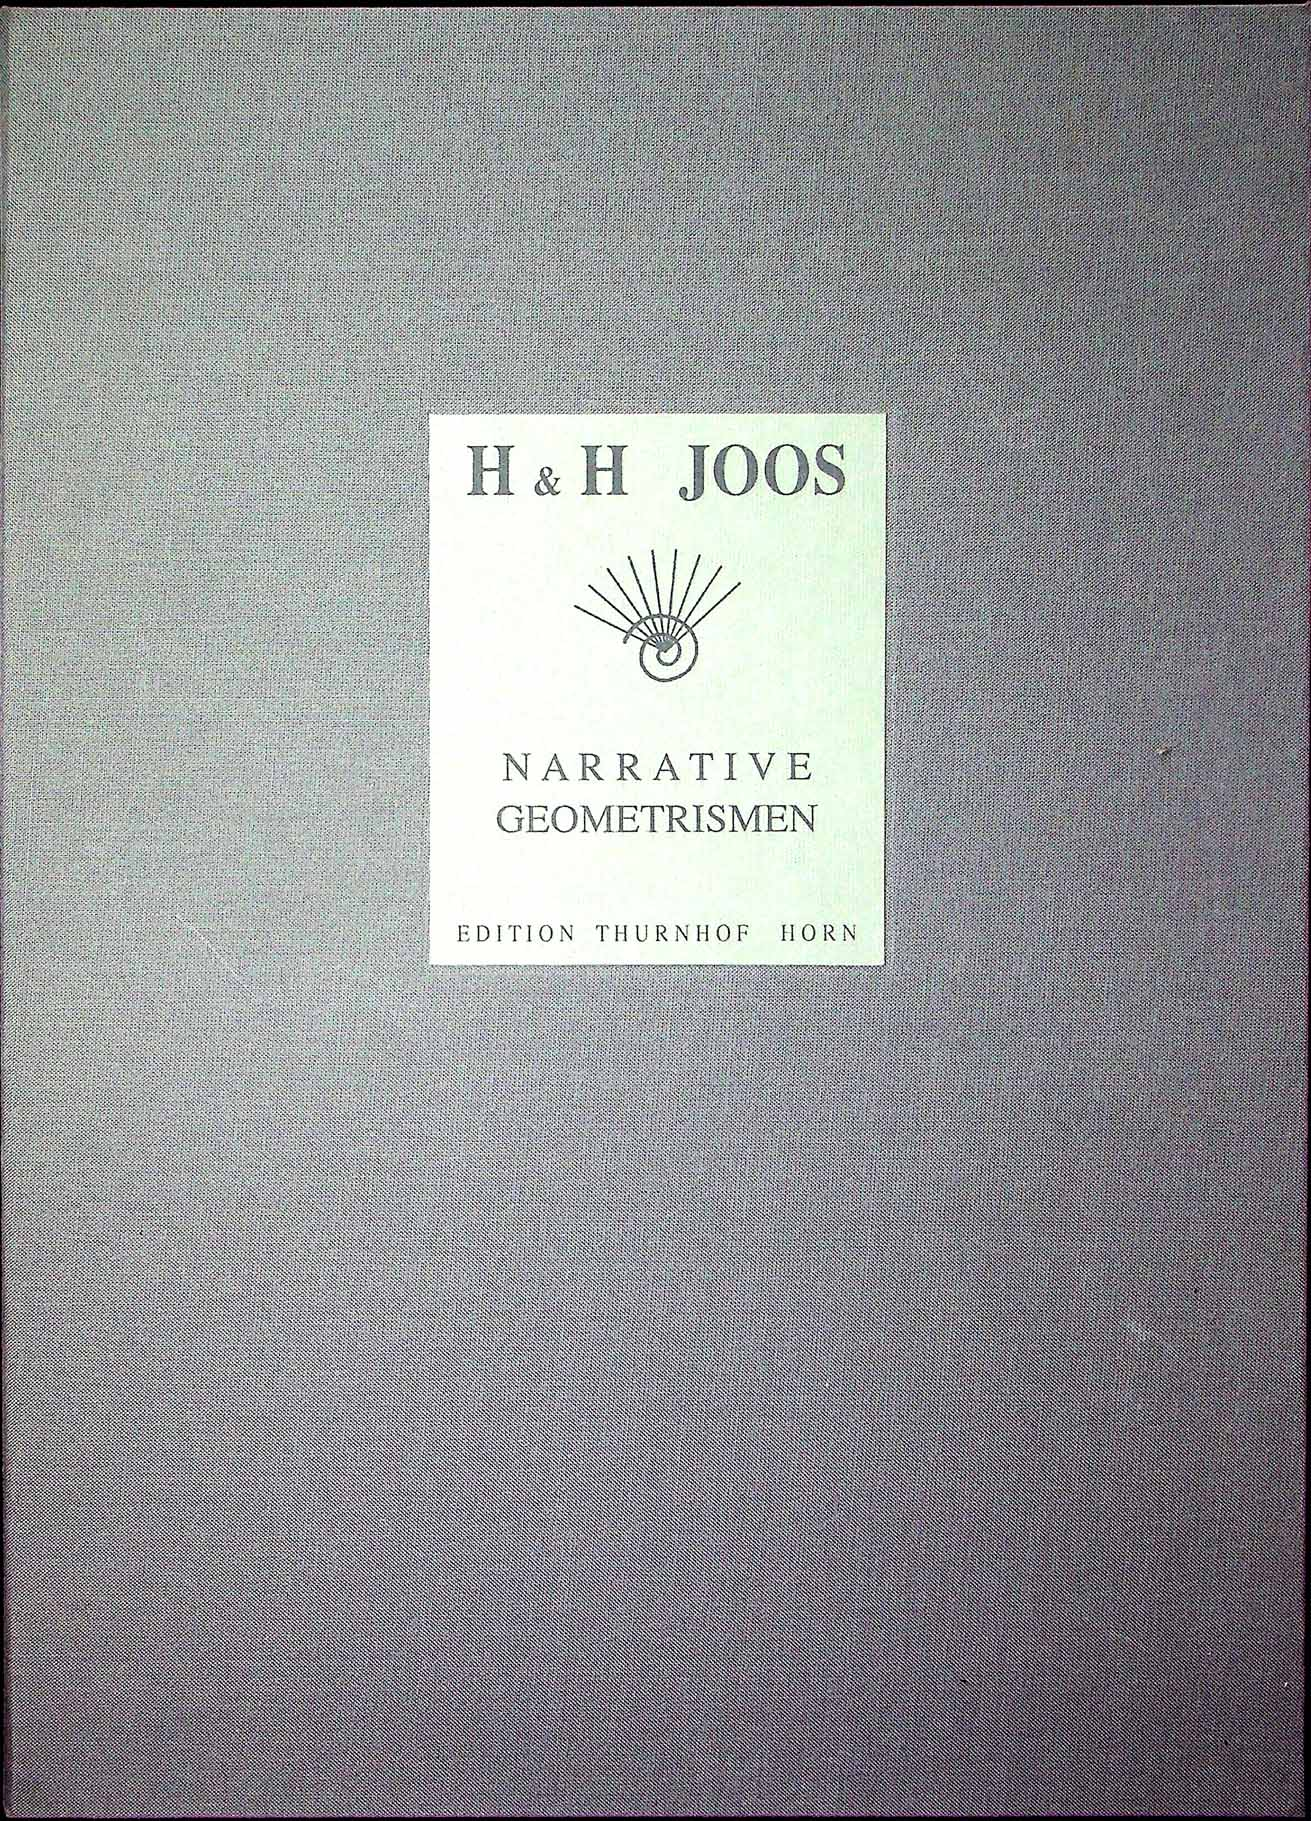 JOOS : NARRATIVE GEOMETRISMEN,Graphikkassette